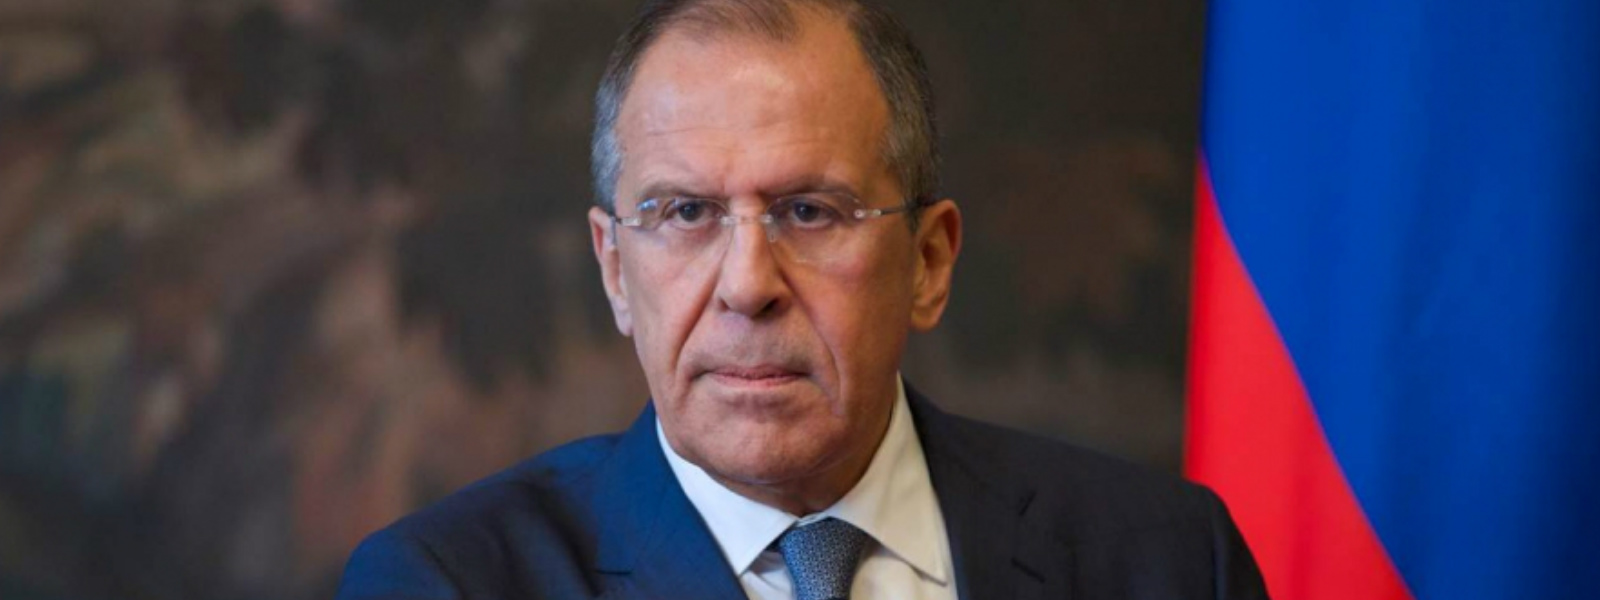 Russian Foreign Minister to arrive in SL in January